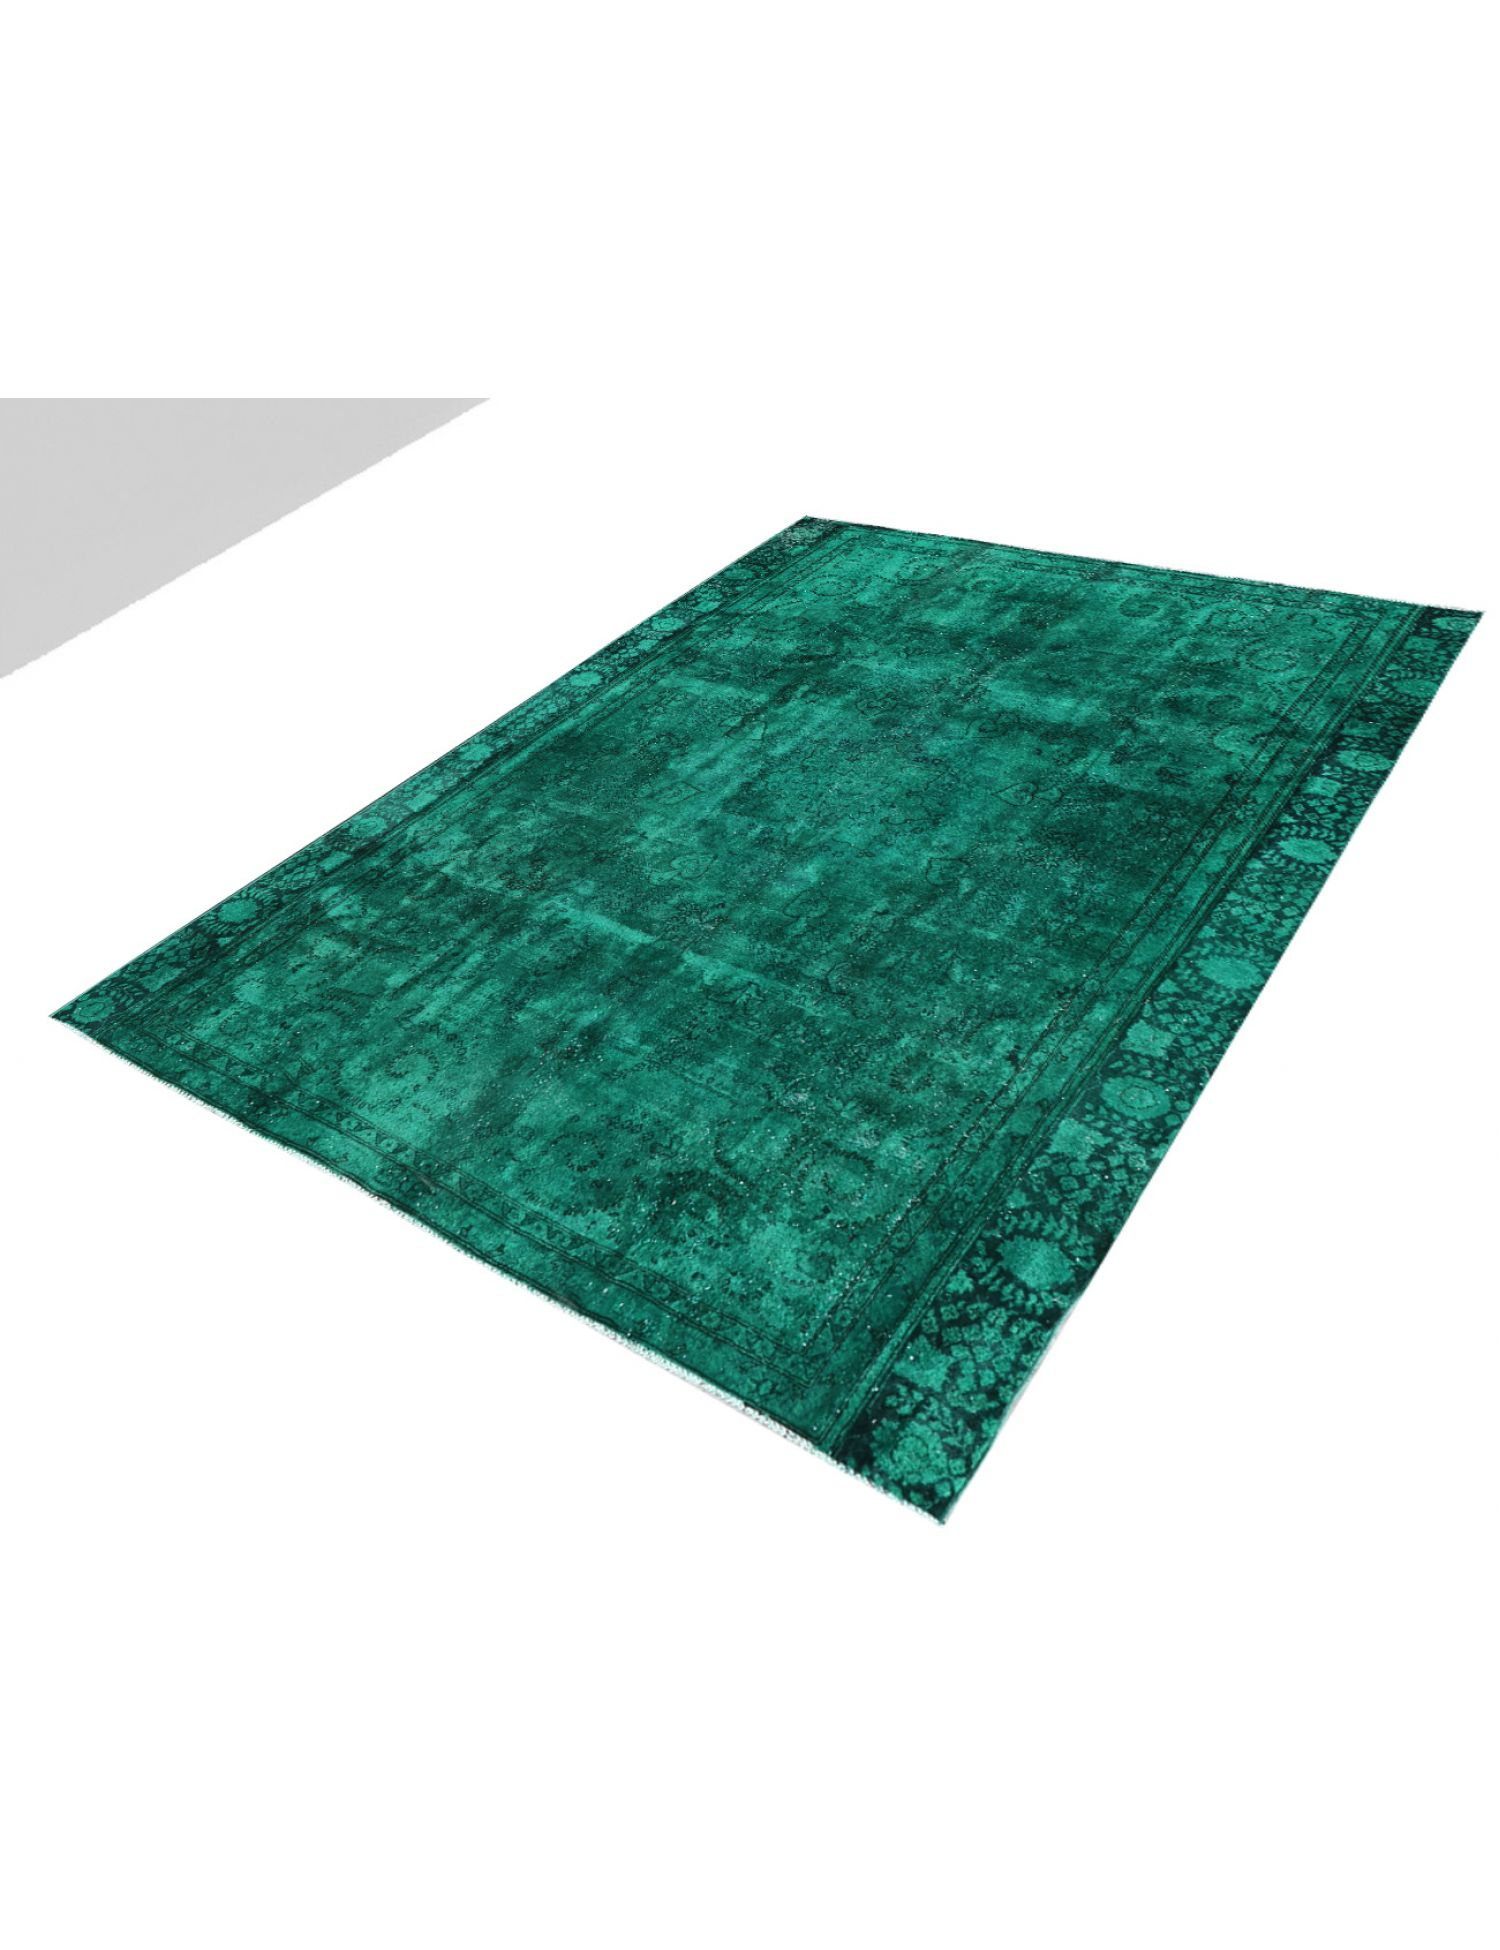 Vintage Carpet  green <br/>300 x 258 cm